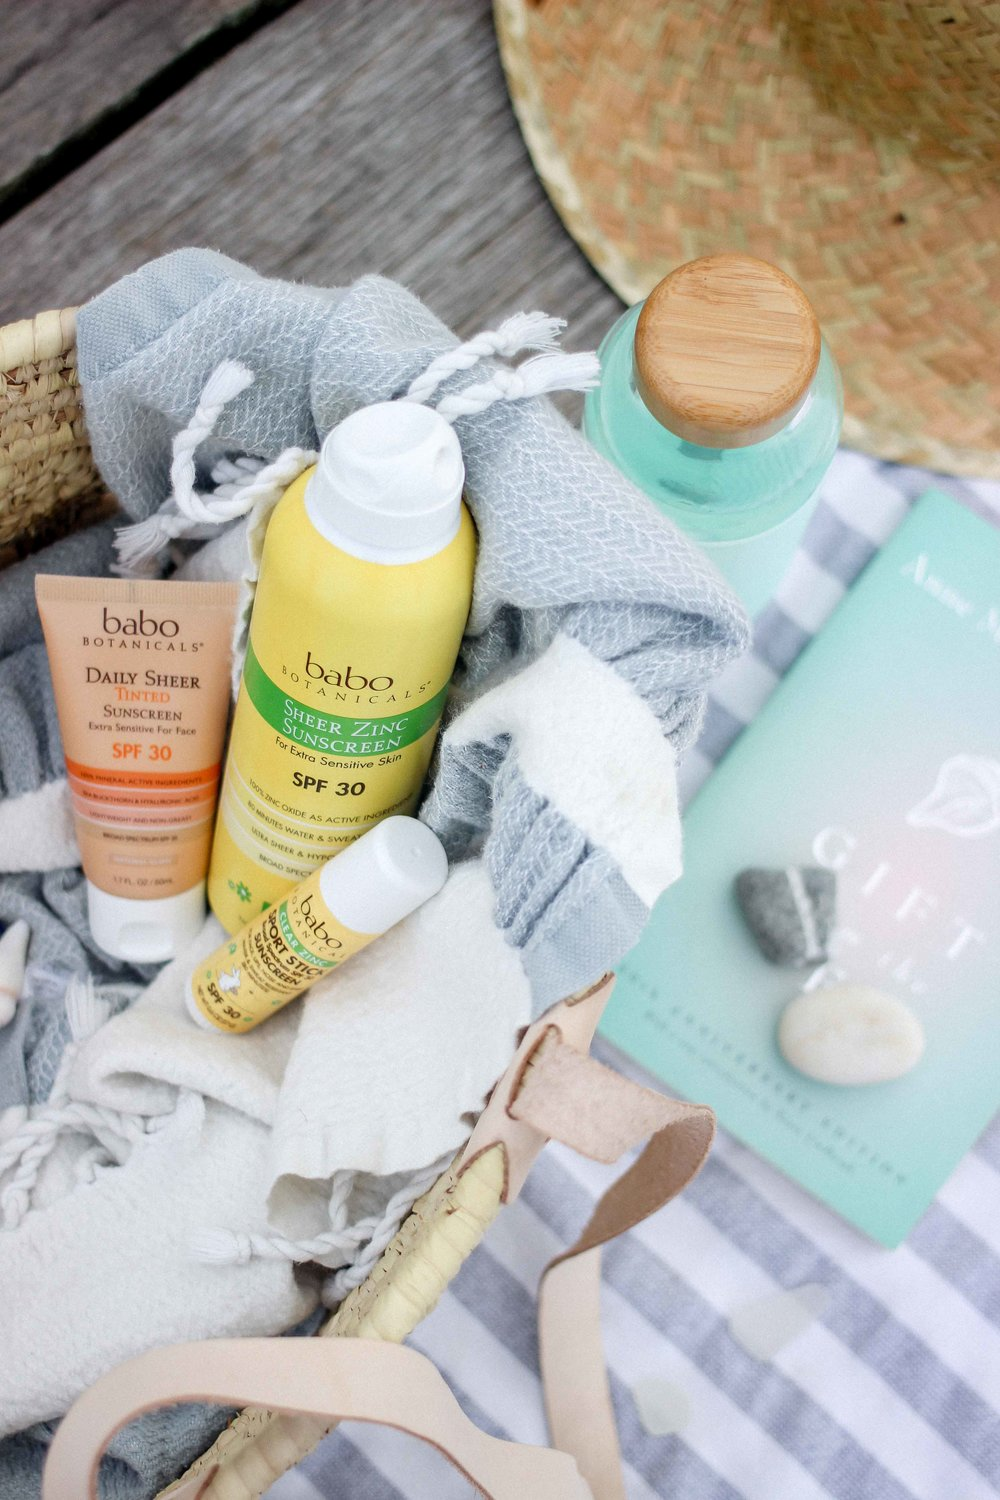 How To Choose A Safe Sunscreen This Summer (Both For Your Body And The Planet) - The Well Essentials & Babo Botanicals